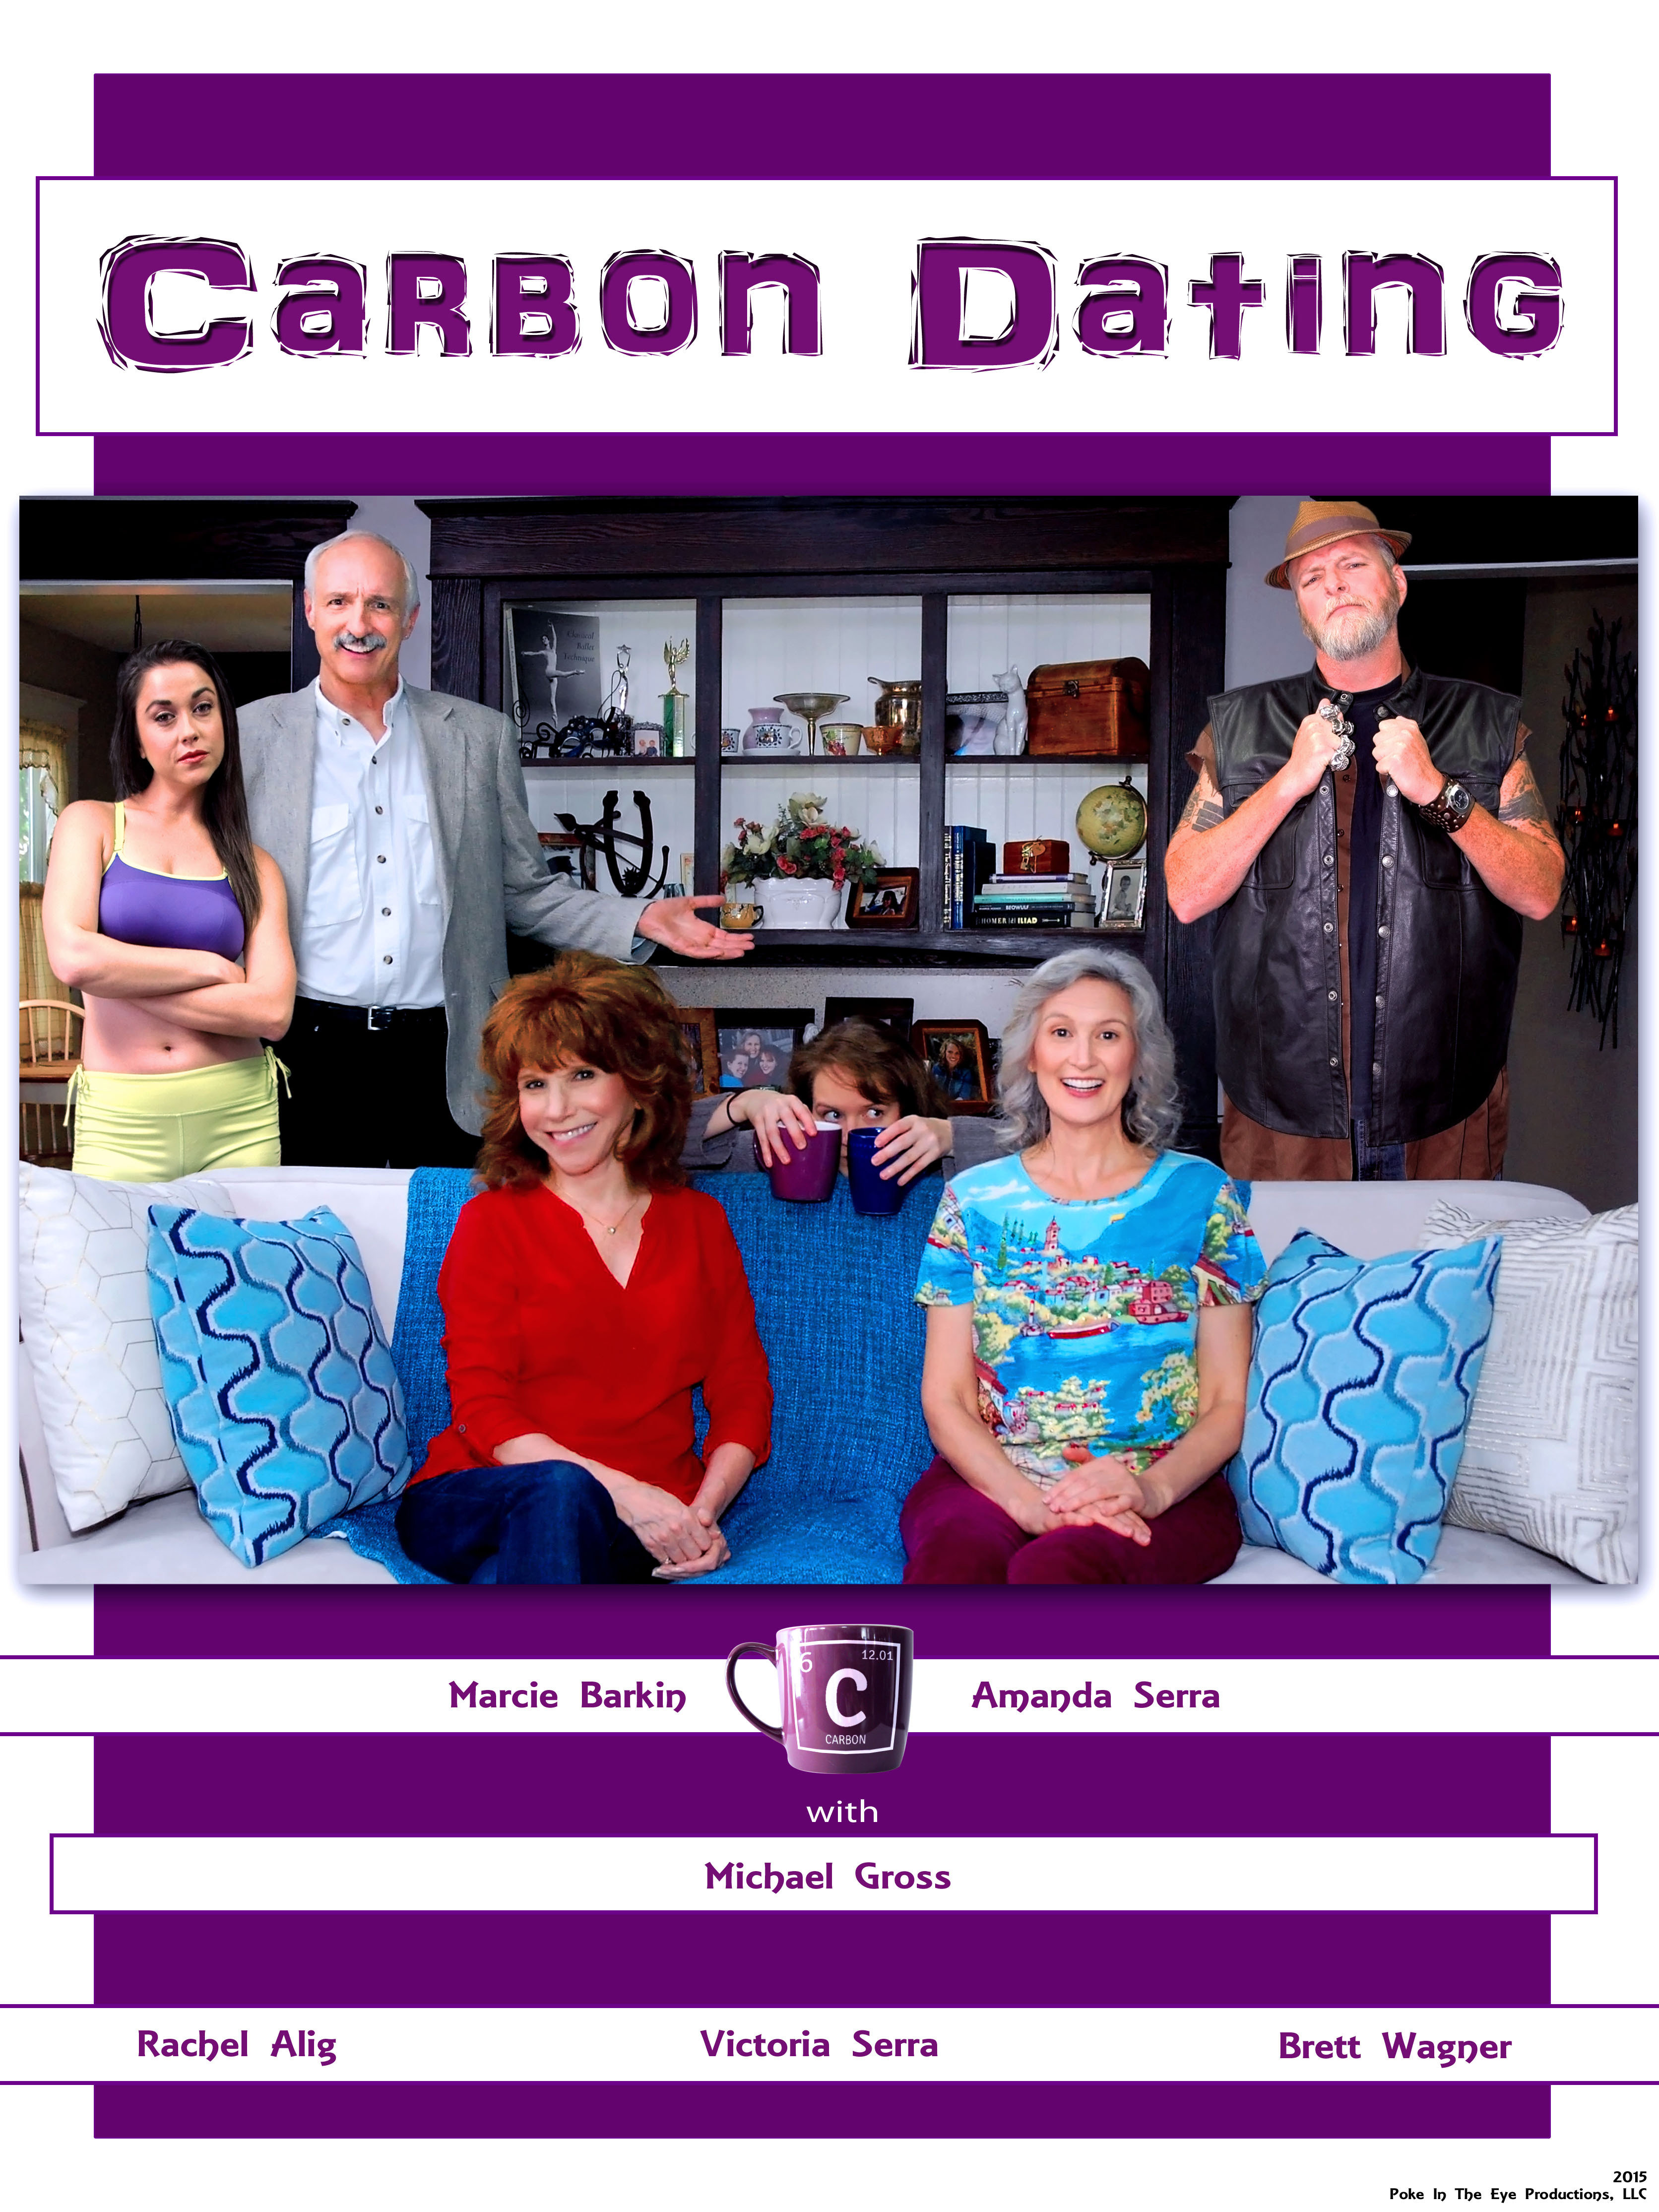 Marcie Barkin, Michael Gross, and Amanda Serra in Carbon Dating (2015)